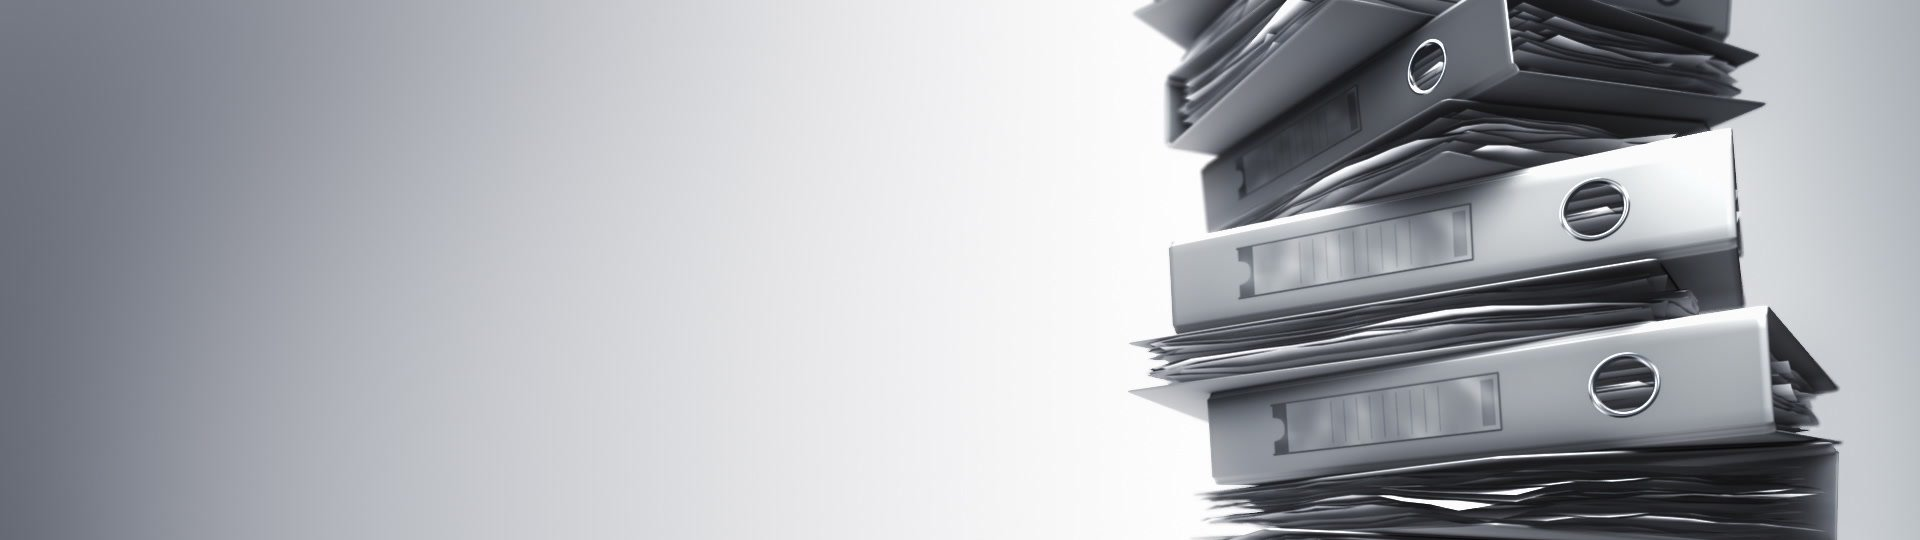 Office Binders Stack (Loop) | Ring binders piled. Seamless loop. - ID:21529